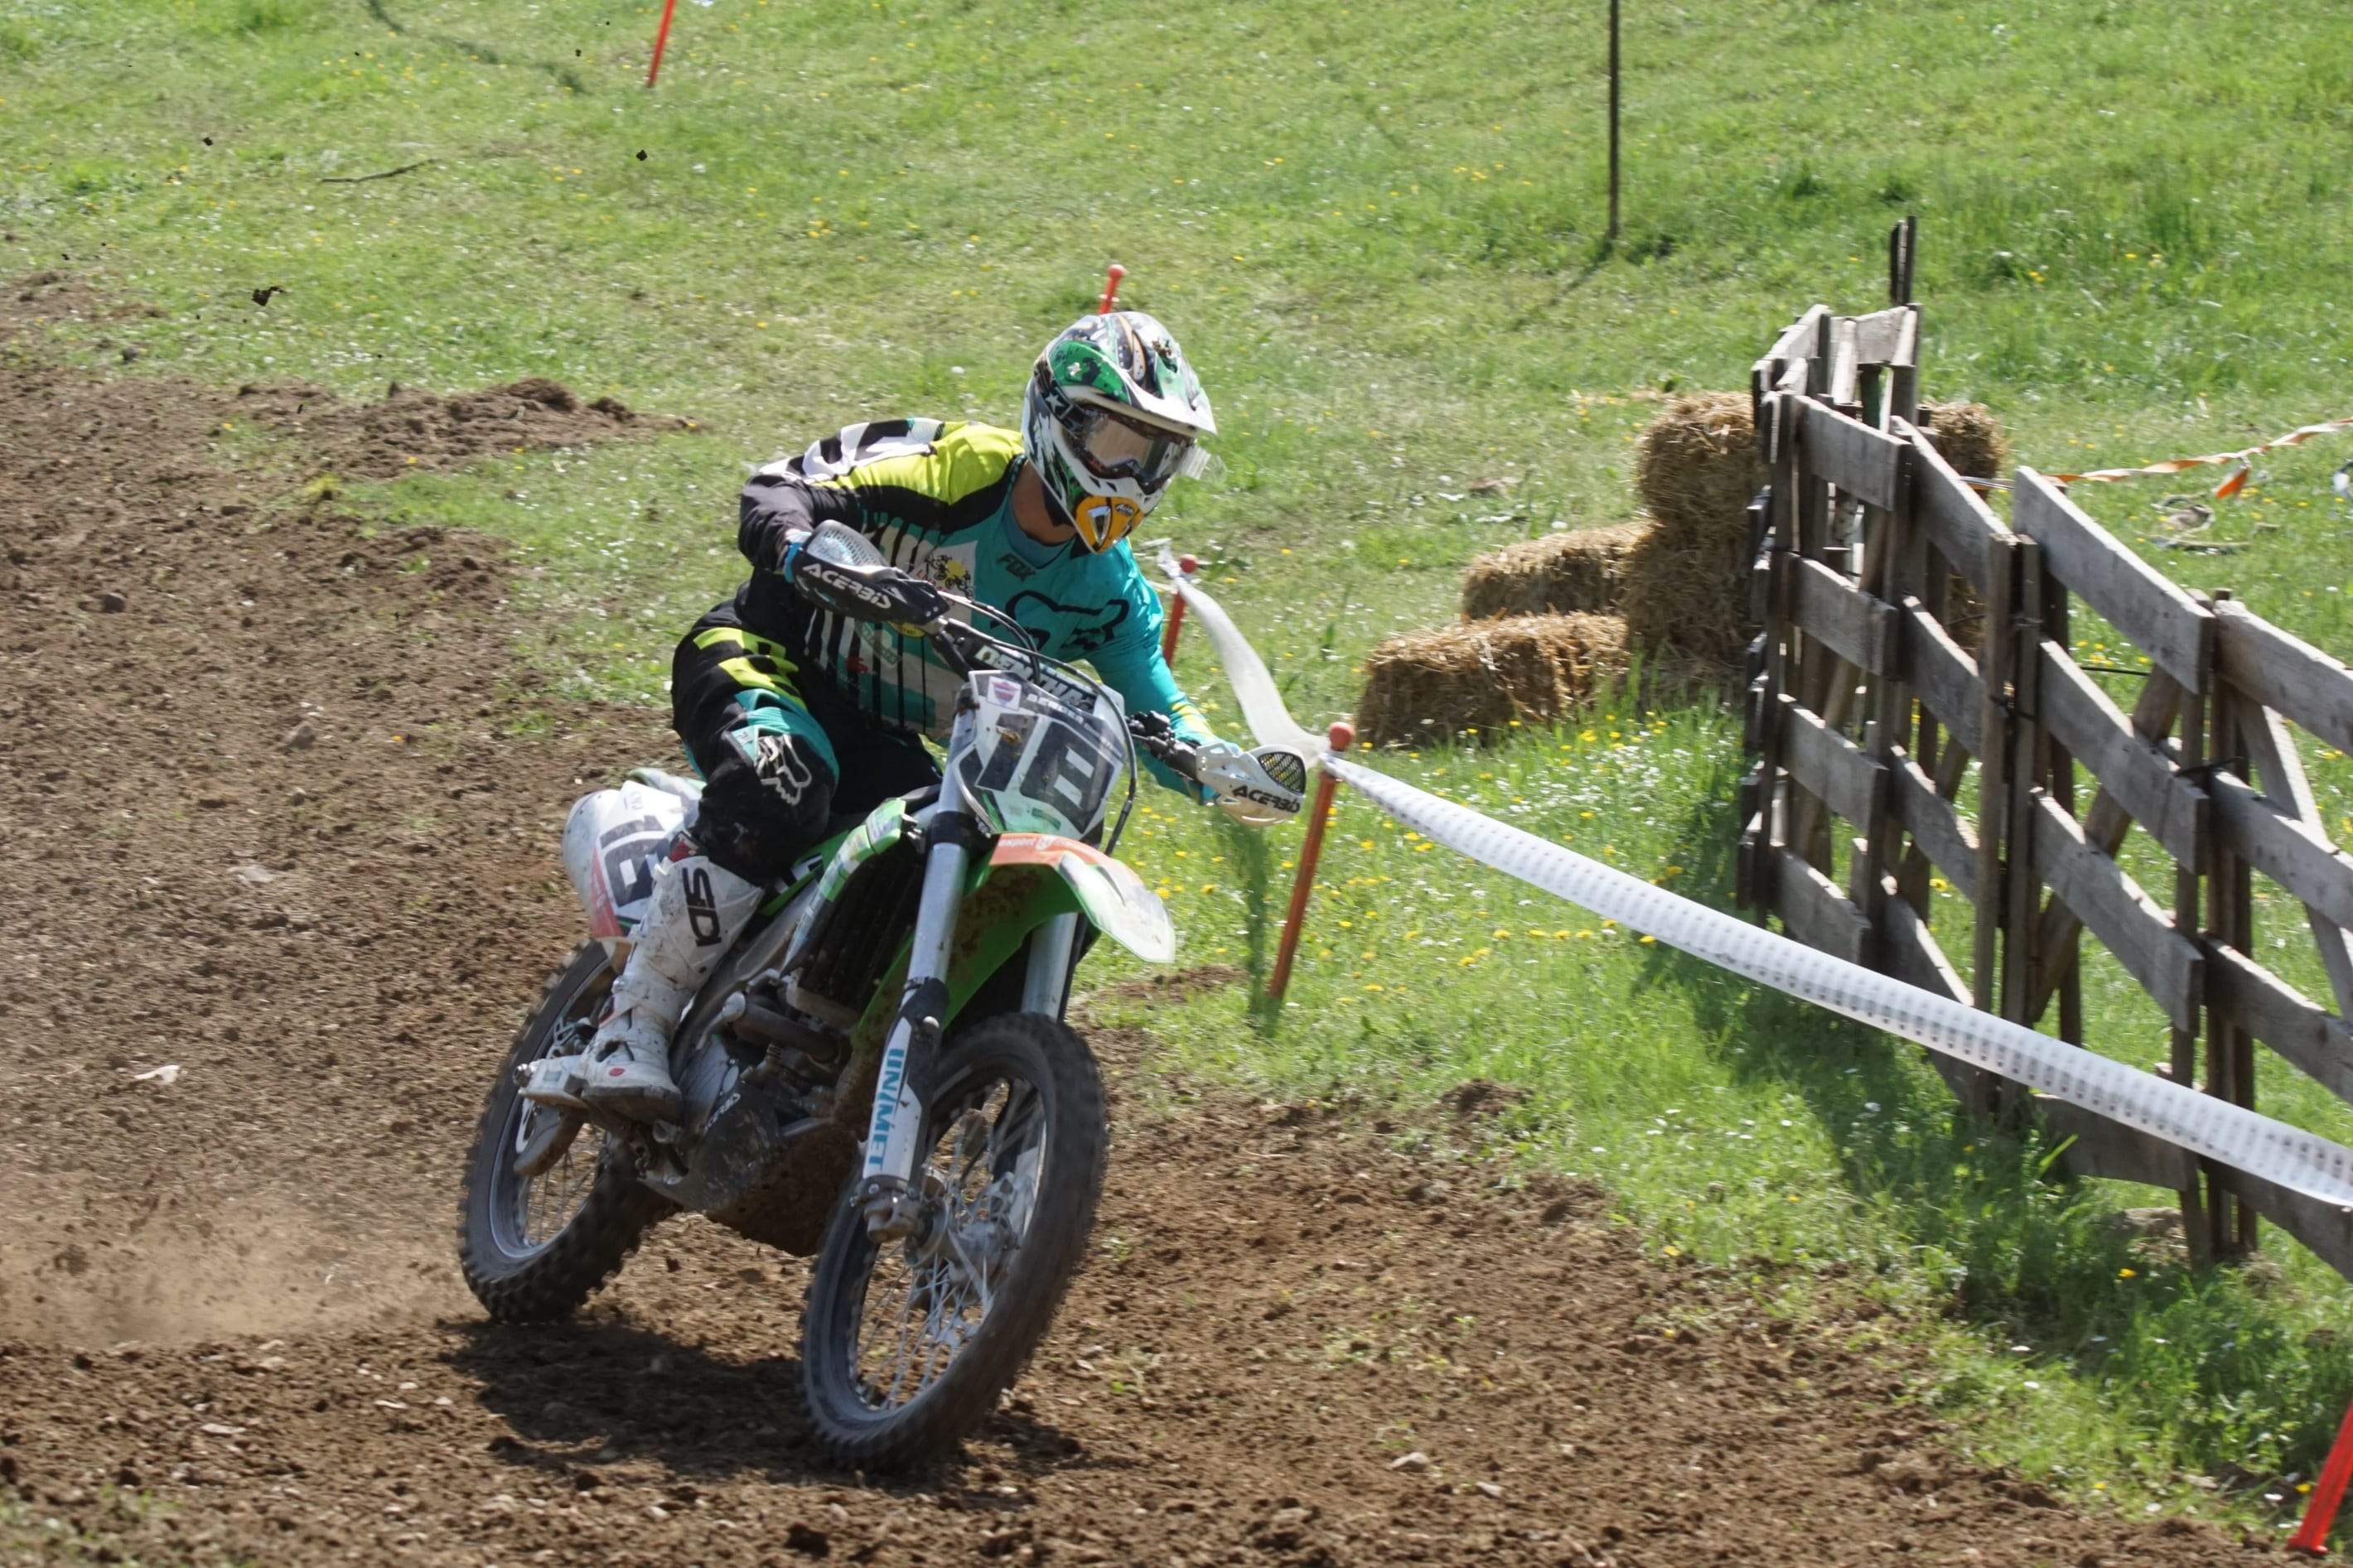 DSC 065_Moto Cross Sittendorf Teil1 am 29.04.2018